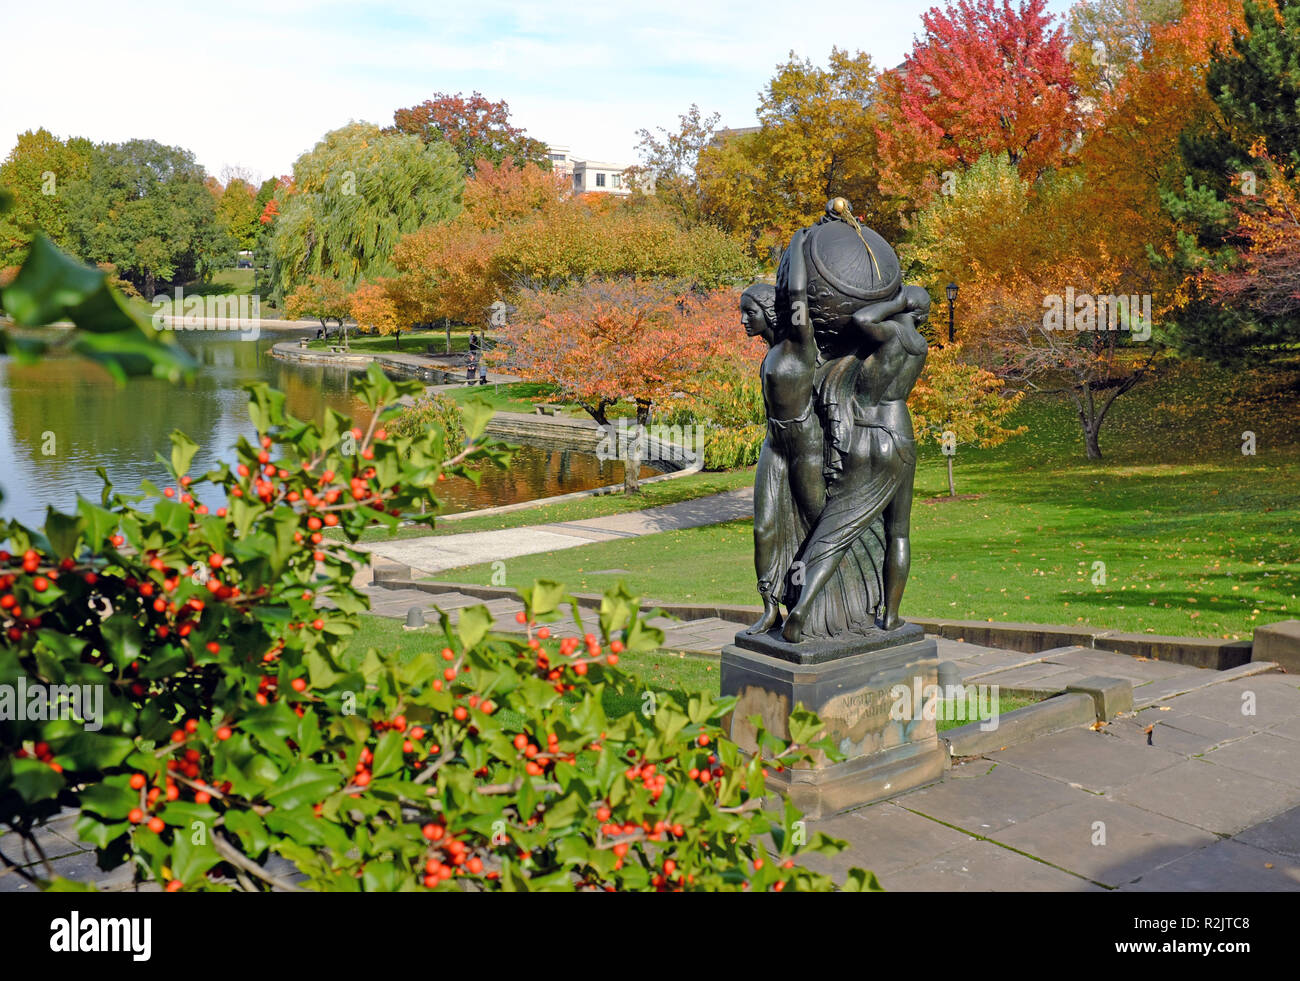 The bronze statue, Night passing the Earth to Day, by Frank Jirouch is surrounded by colorful autumn foliage in Wade Park in Cleveland, Ohio, USA. - Stock Image